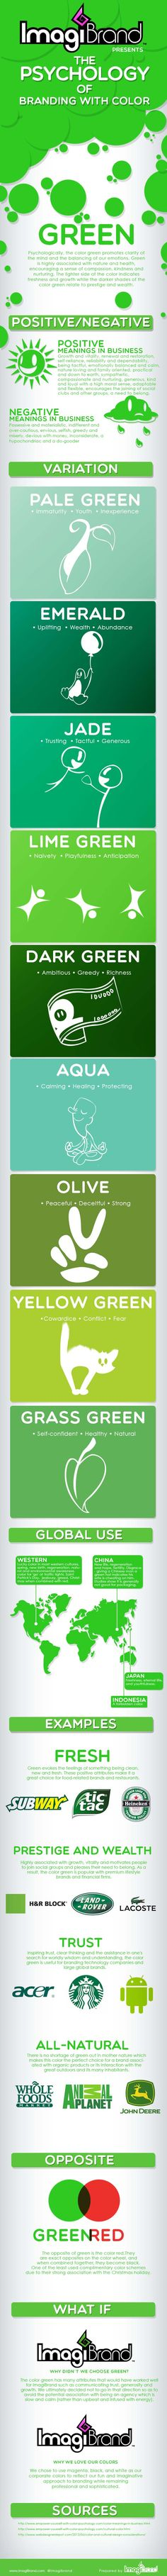 The Psychology of Green Branding [infographic]